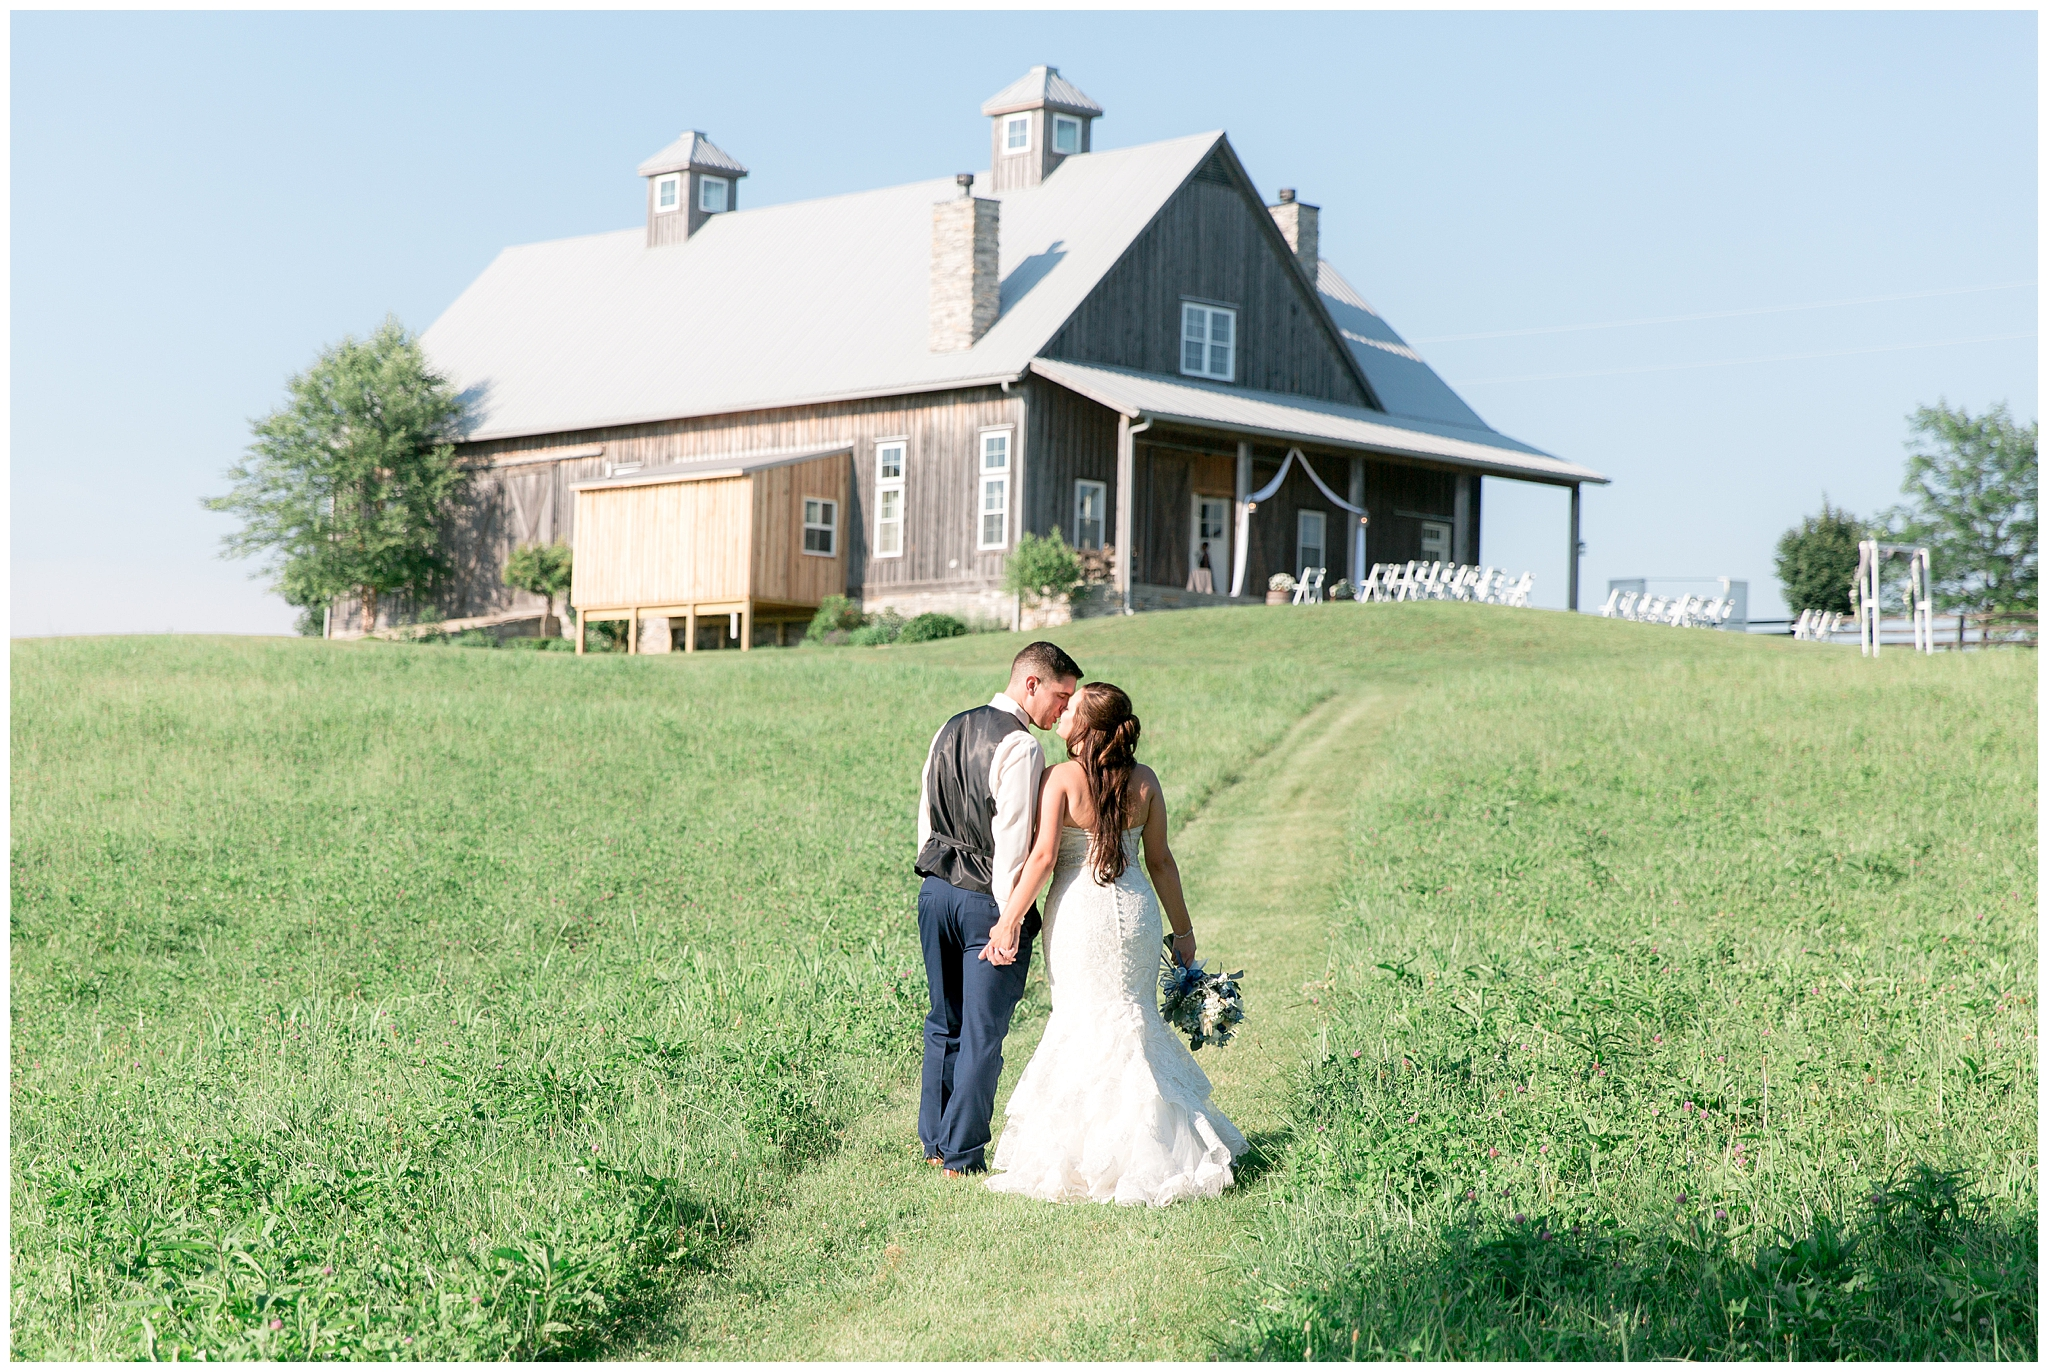 "Long Ridge Farm was the perfect setting for the Nehez wedding last June. Breanne and Mitchell go as far back as high school and their love has only grown with time. From 10th grade English class to their wedding day, these two sweethearts are committed to forever!  Breanne knew she would love Mitchell for the rest of her life the day their son's life began. Seeing him become a dad was so precious to her and their baby boy played a special role on proposal day and wedding day. When Mitchell proposed, he had their son in a onesie that said, ""Mommy will you marry Daddy?"" When it came time after the ""I Dos"" their son walked down the aisle with them into the perfect getaway car.  Breanne took the reins as the planner for her wedding. Her advice for brides trying to do the same is to not stress, that it will all fall into place; and it sure did! From the floral invites, to the customized bridal robes, every detail was stunning on the big day.  The reception wrapped up the Nehez wedding day with a bang! Catering was done by Mark's Feed Store in Louisville and the DJ Buddy Irvin made sure to keep the crowd dancing. After digging in to their flawless cake by Darlene Nold, the couple swayed to the music until this perfect day was over."